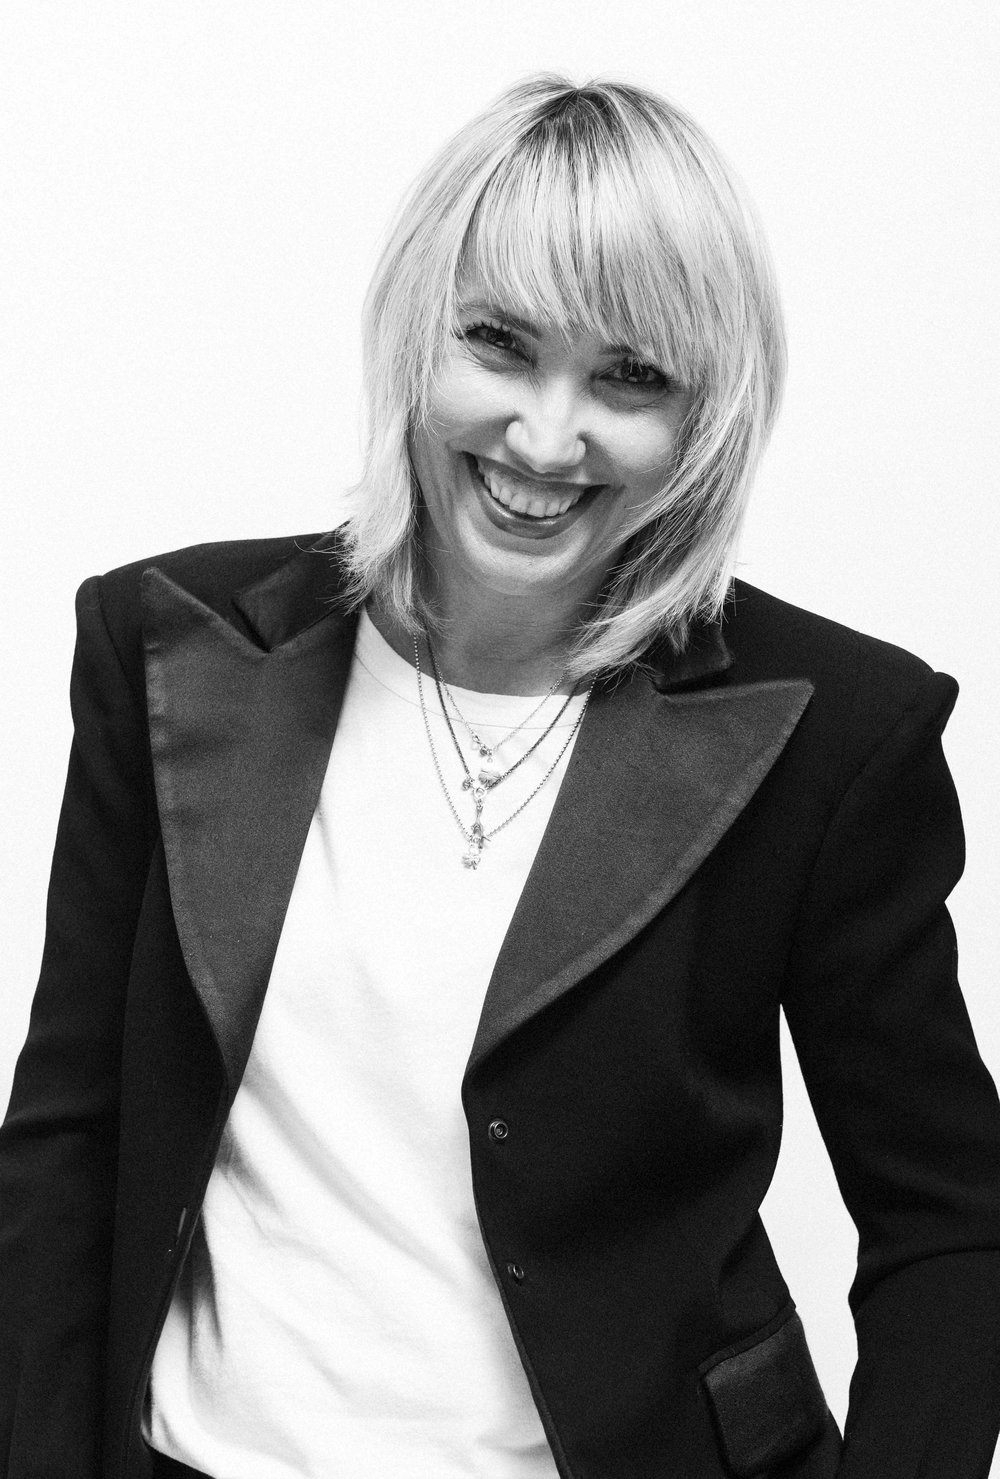 Chiara CABERLON, ARCHITECT, FOUNDER